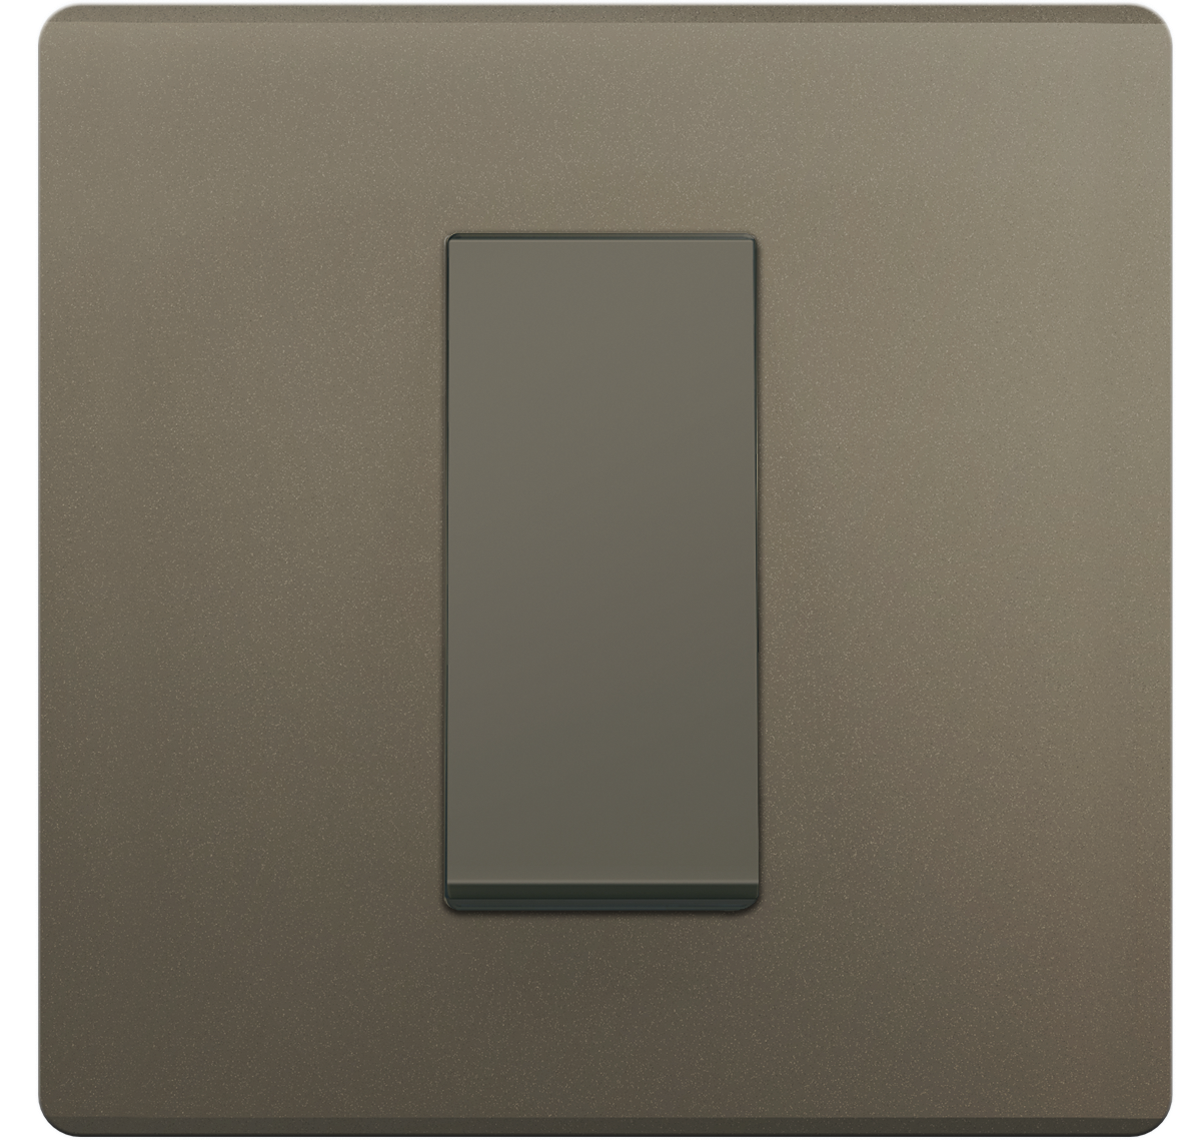 Crabtree - 1 M cover plate Grey